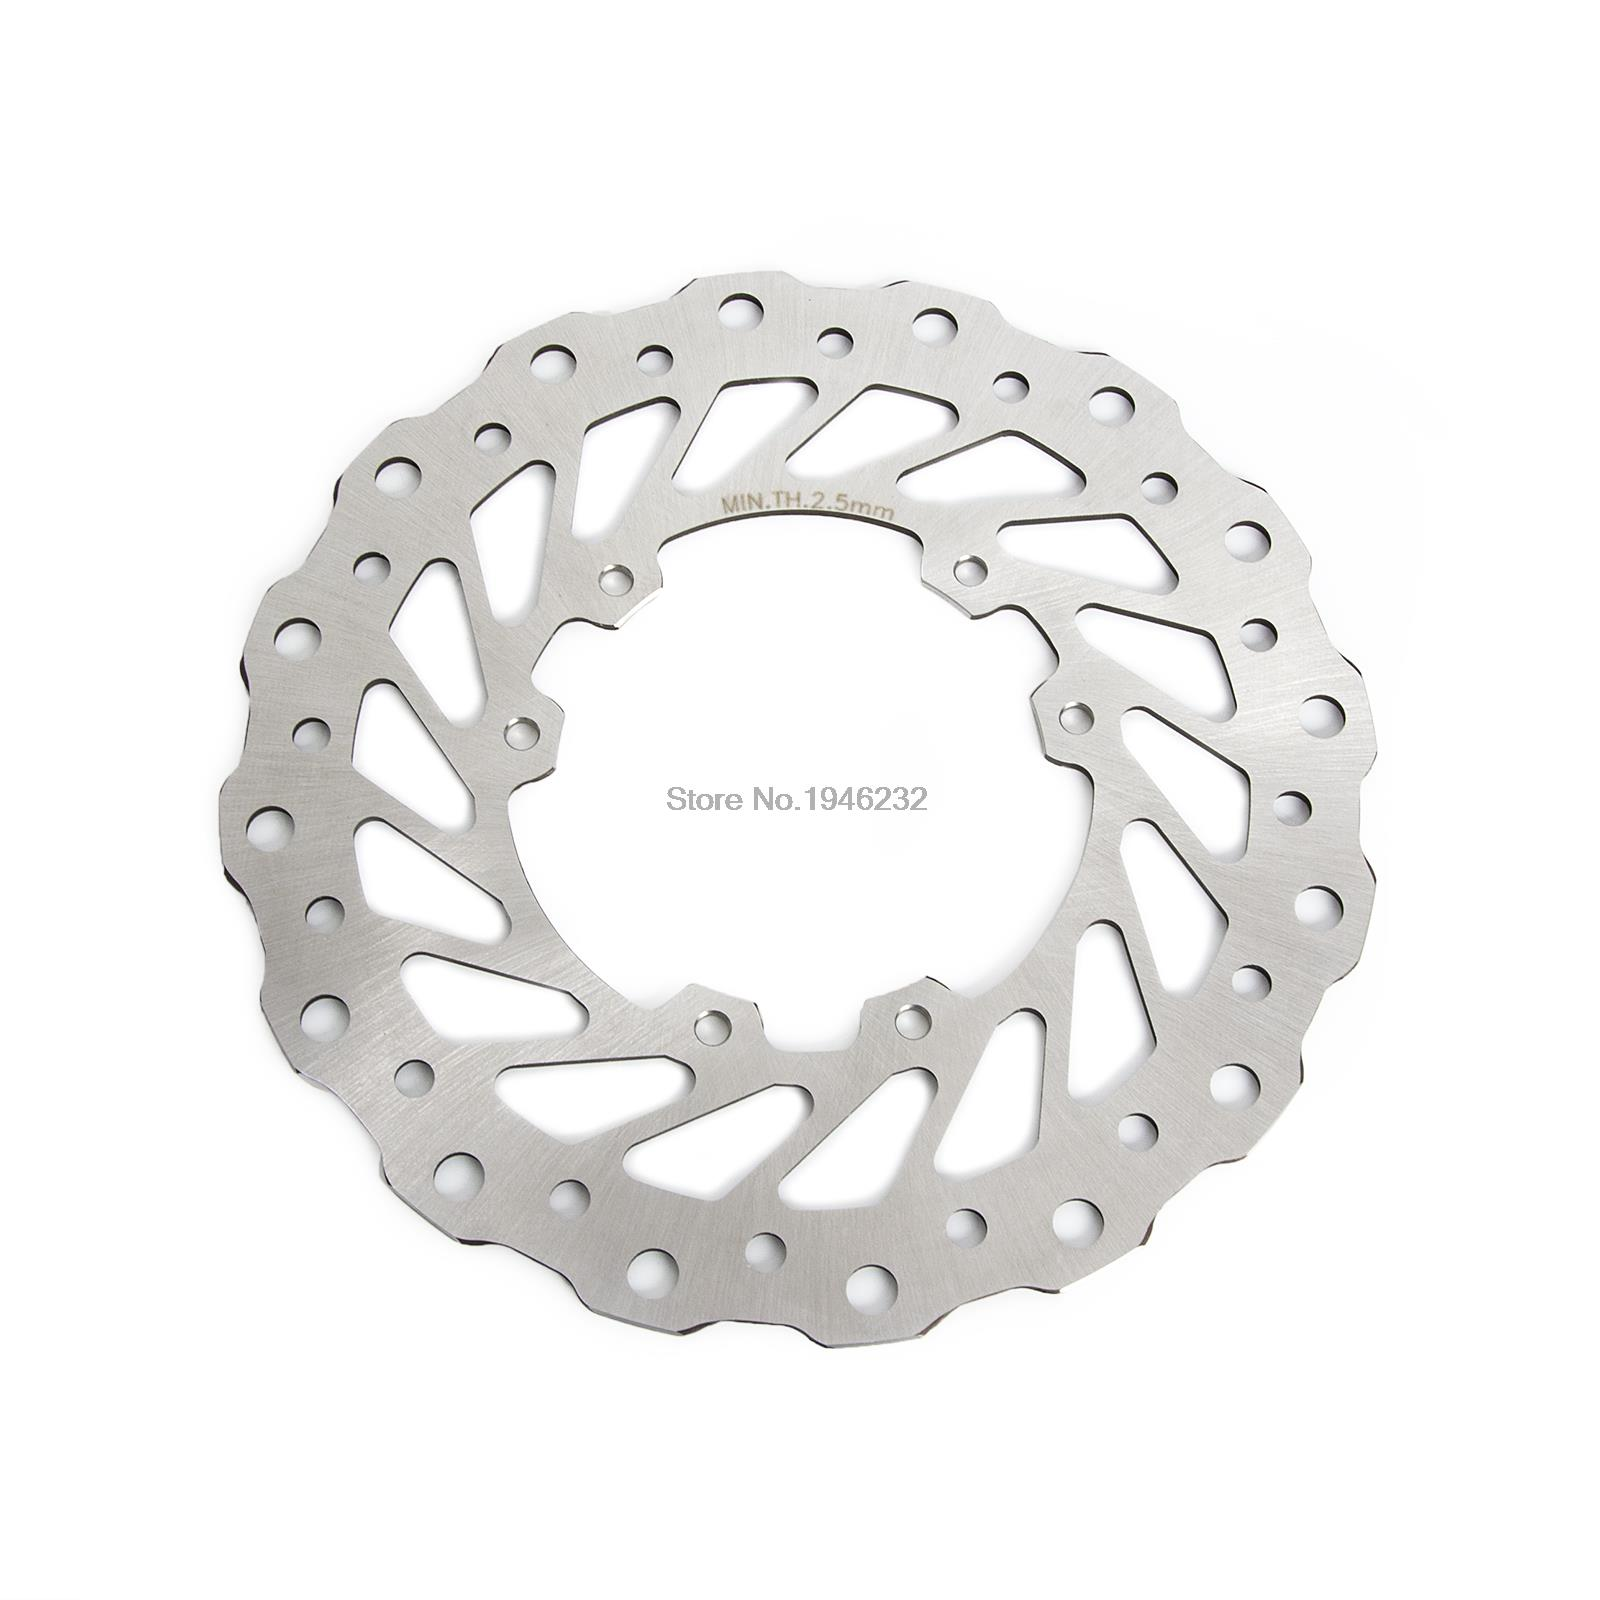 Metallic Front Brake Disc Rotor  For Honda 125cc CR 125 CR250 1995-2007 CRF250 CRF450 2004-2014 CR 500 1995-2001<br>